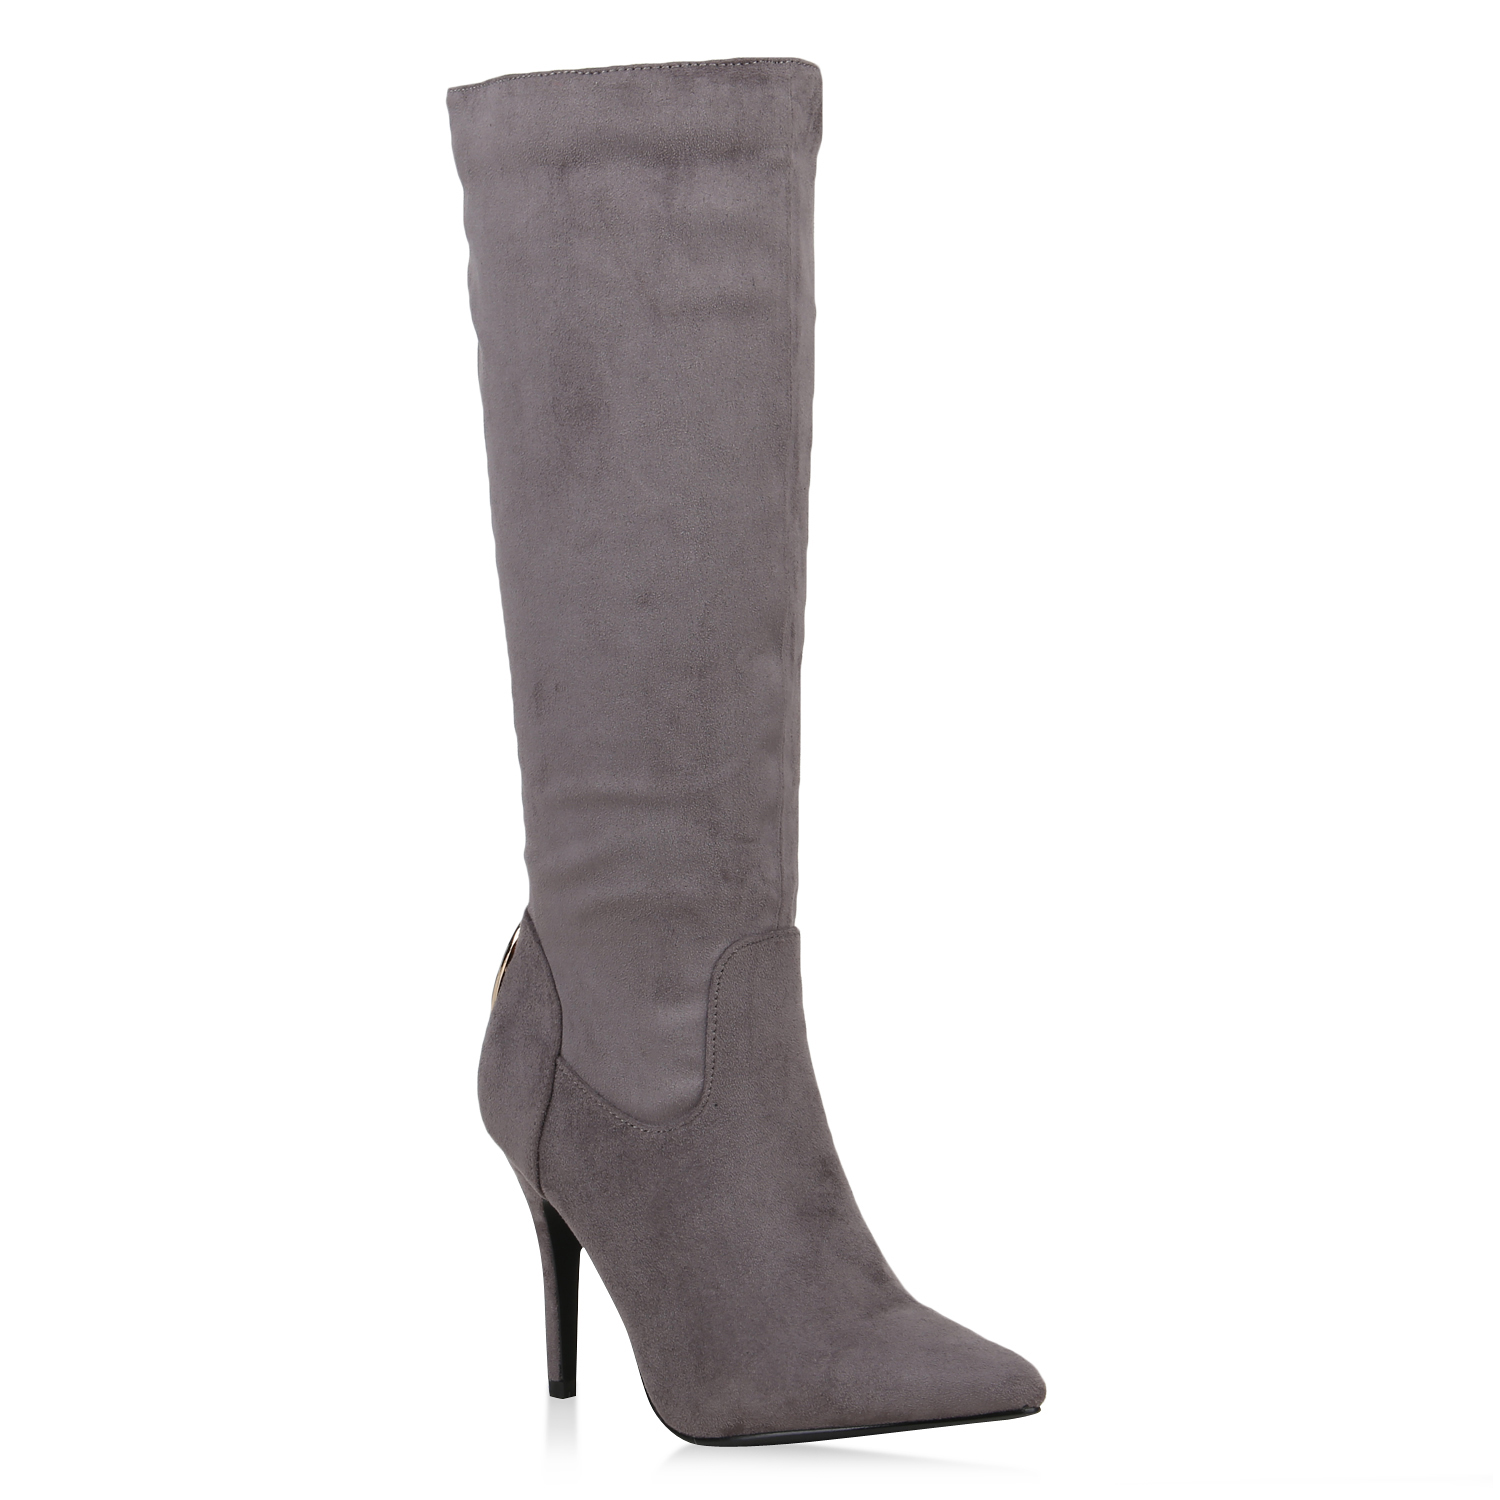 Damen Stiefel High Heels - Grau